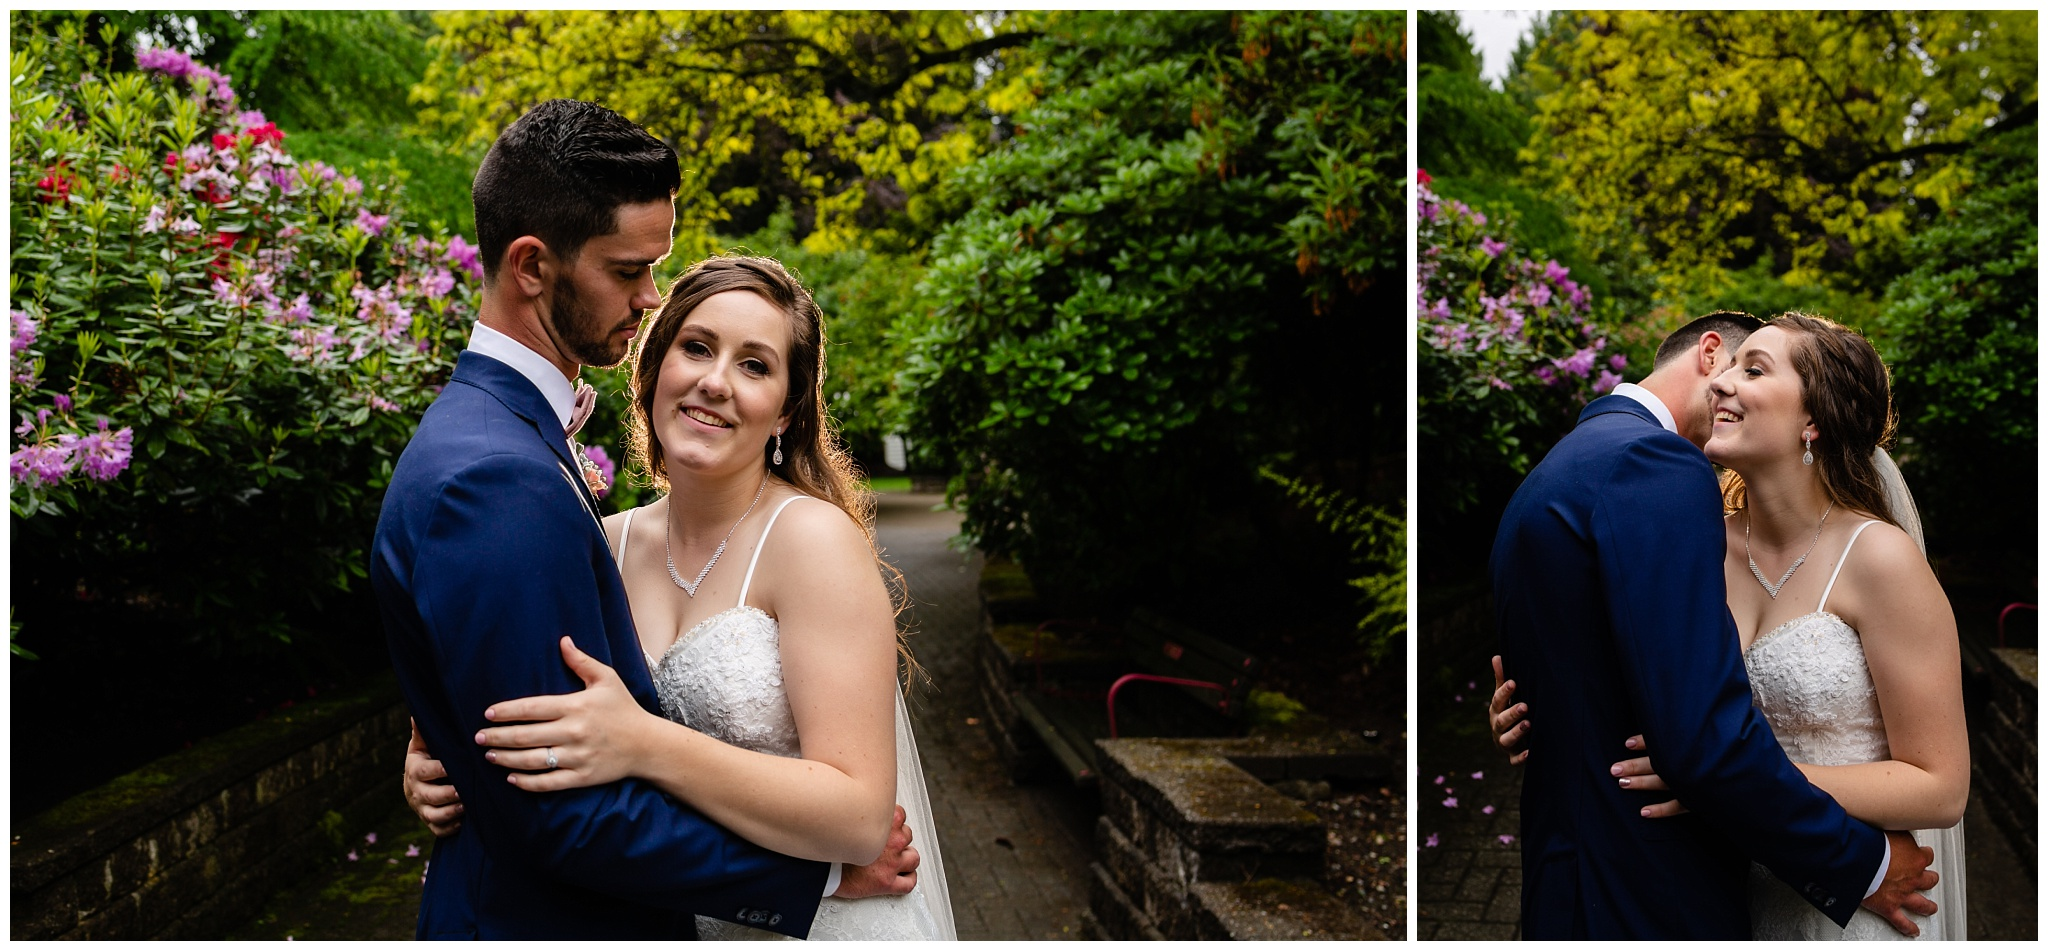 Cloverdale Canadian Reformed Church Wedding Sendall Garden Bride Groom Portraits Christian Couples Best Photographer in Langley Surrey British Columbia_0050.jpg